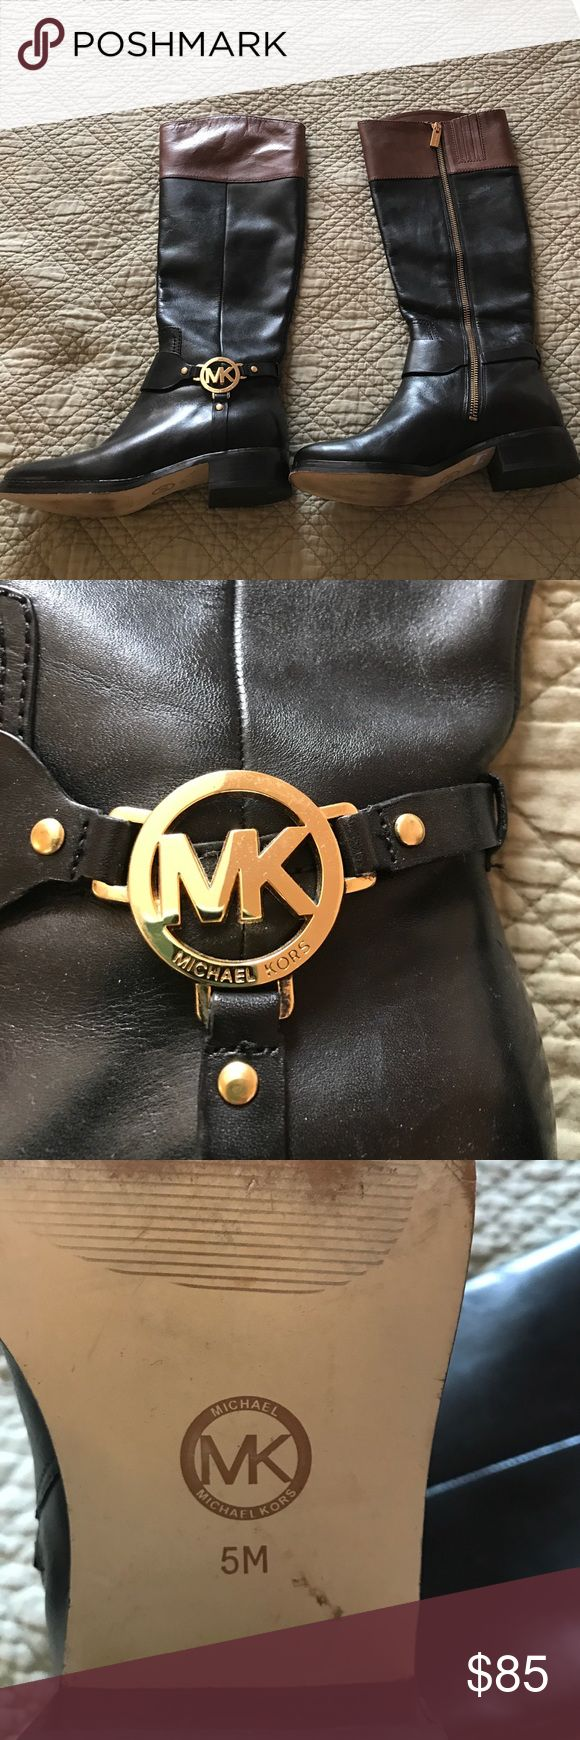 👢Michael Kors Boots 👢 Black and Tan MK boots; bought used, worn once after purchase MICHAEL Michael Kors Shoes Heeled Boots